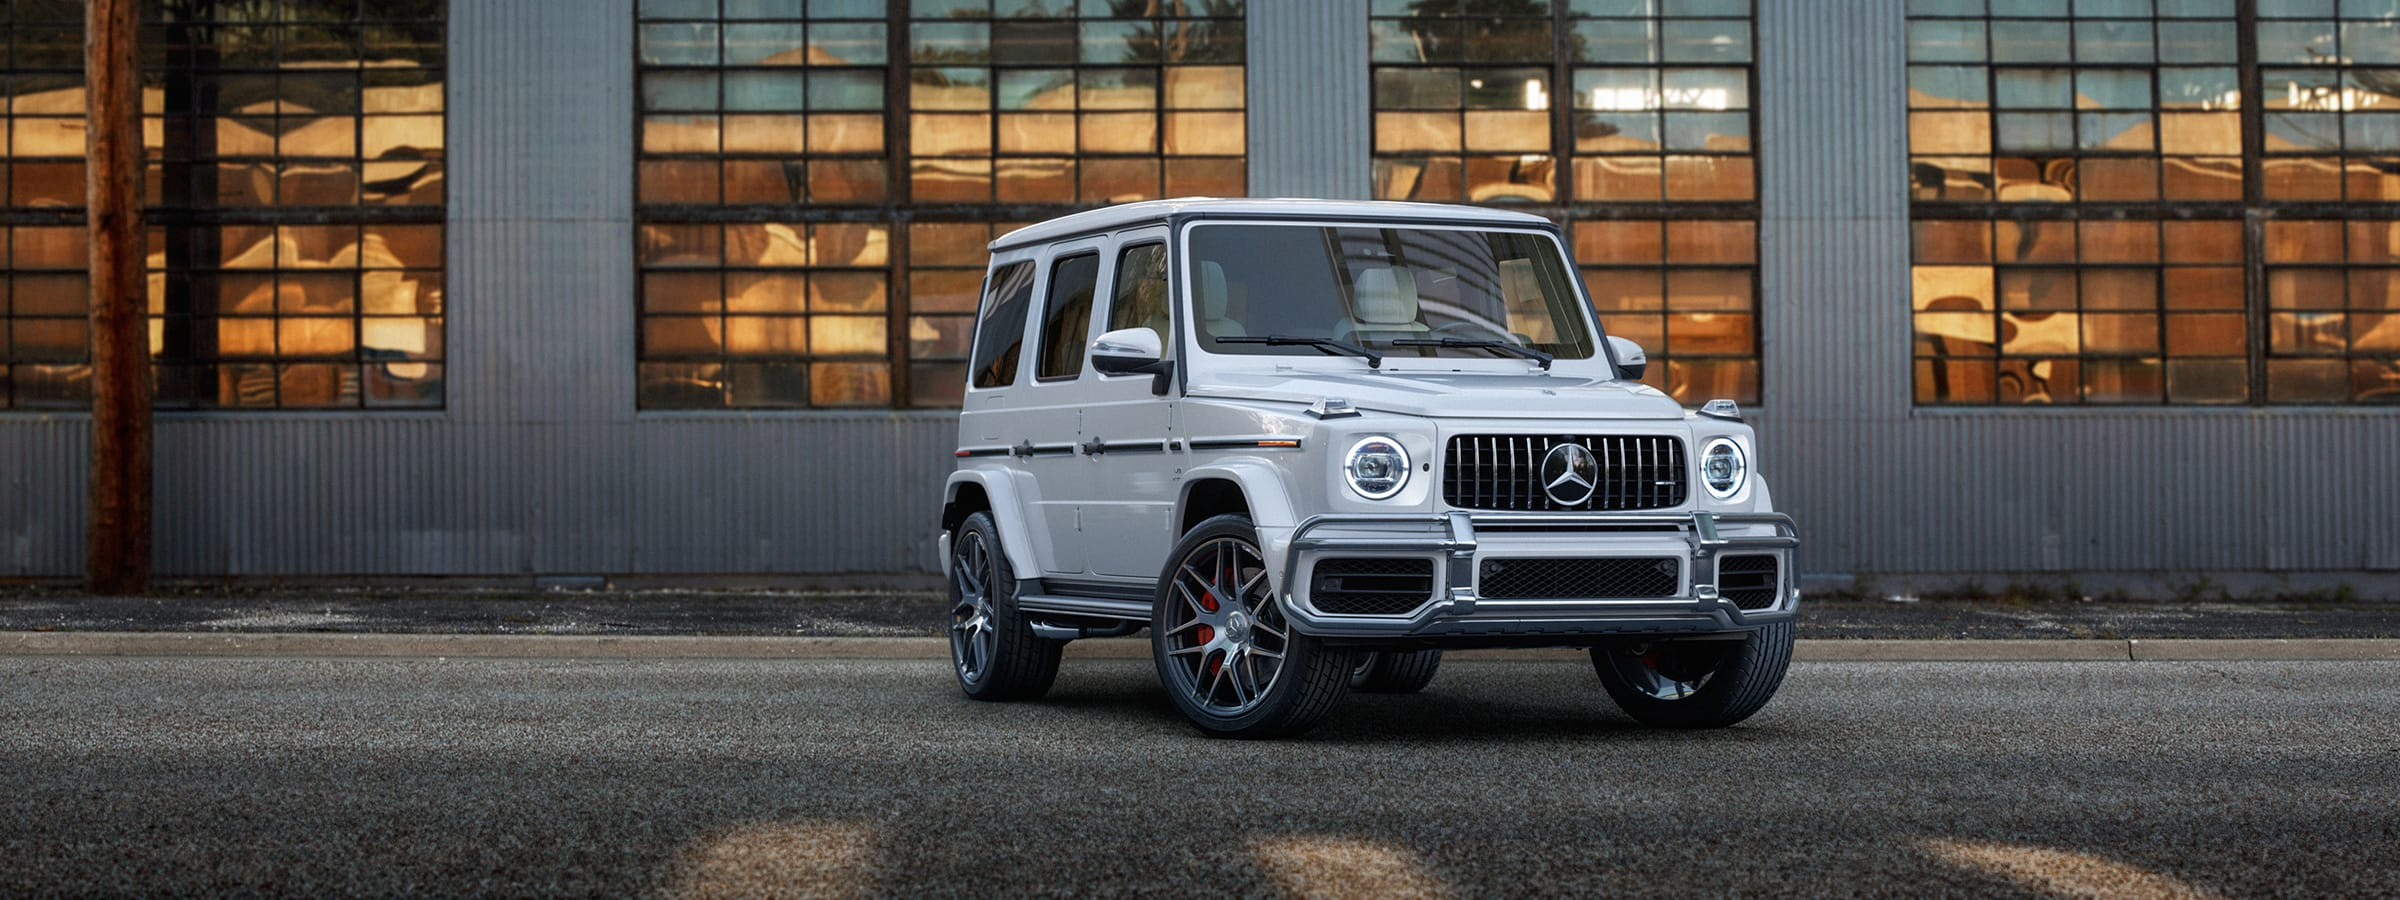 Mercedes Benz Amg >> Amg G Class Luxury Off Road Suv Mercedes Benz